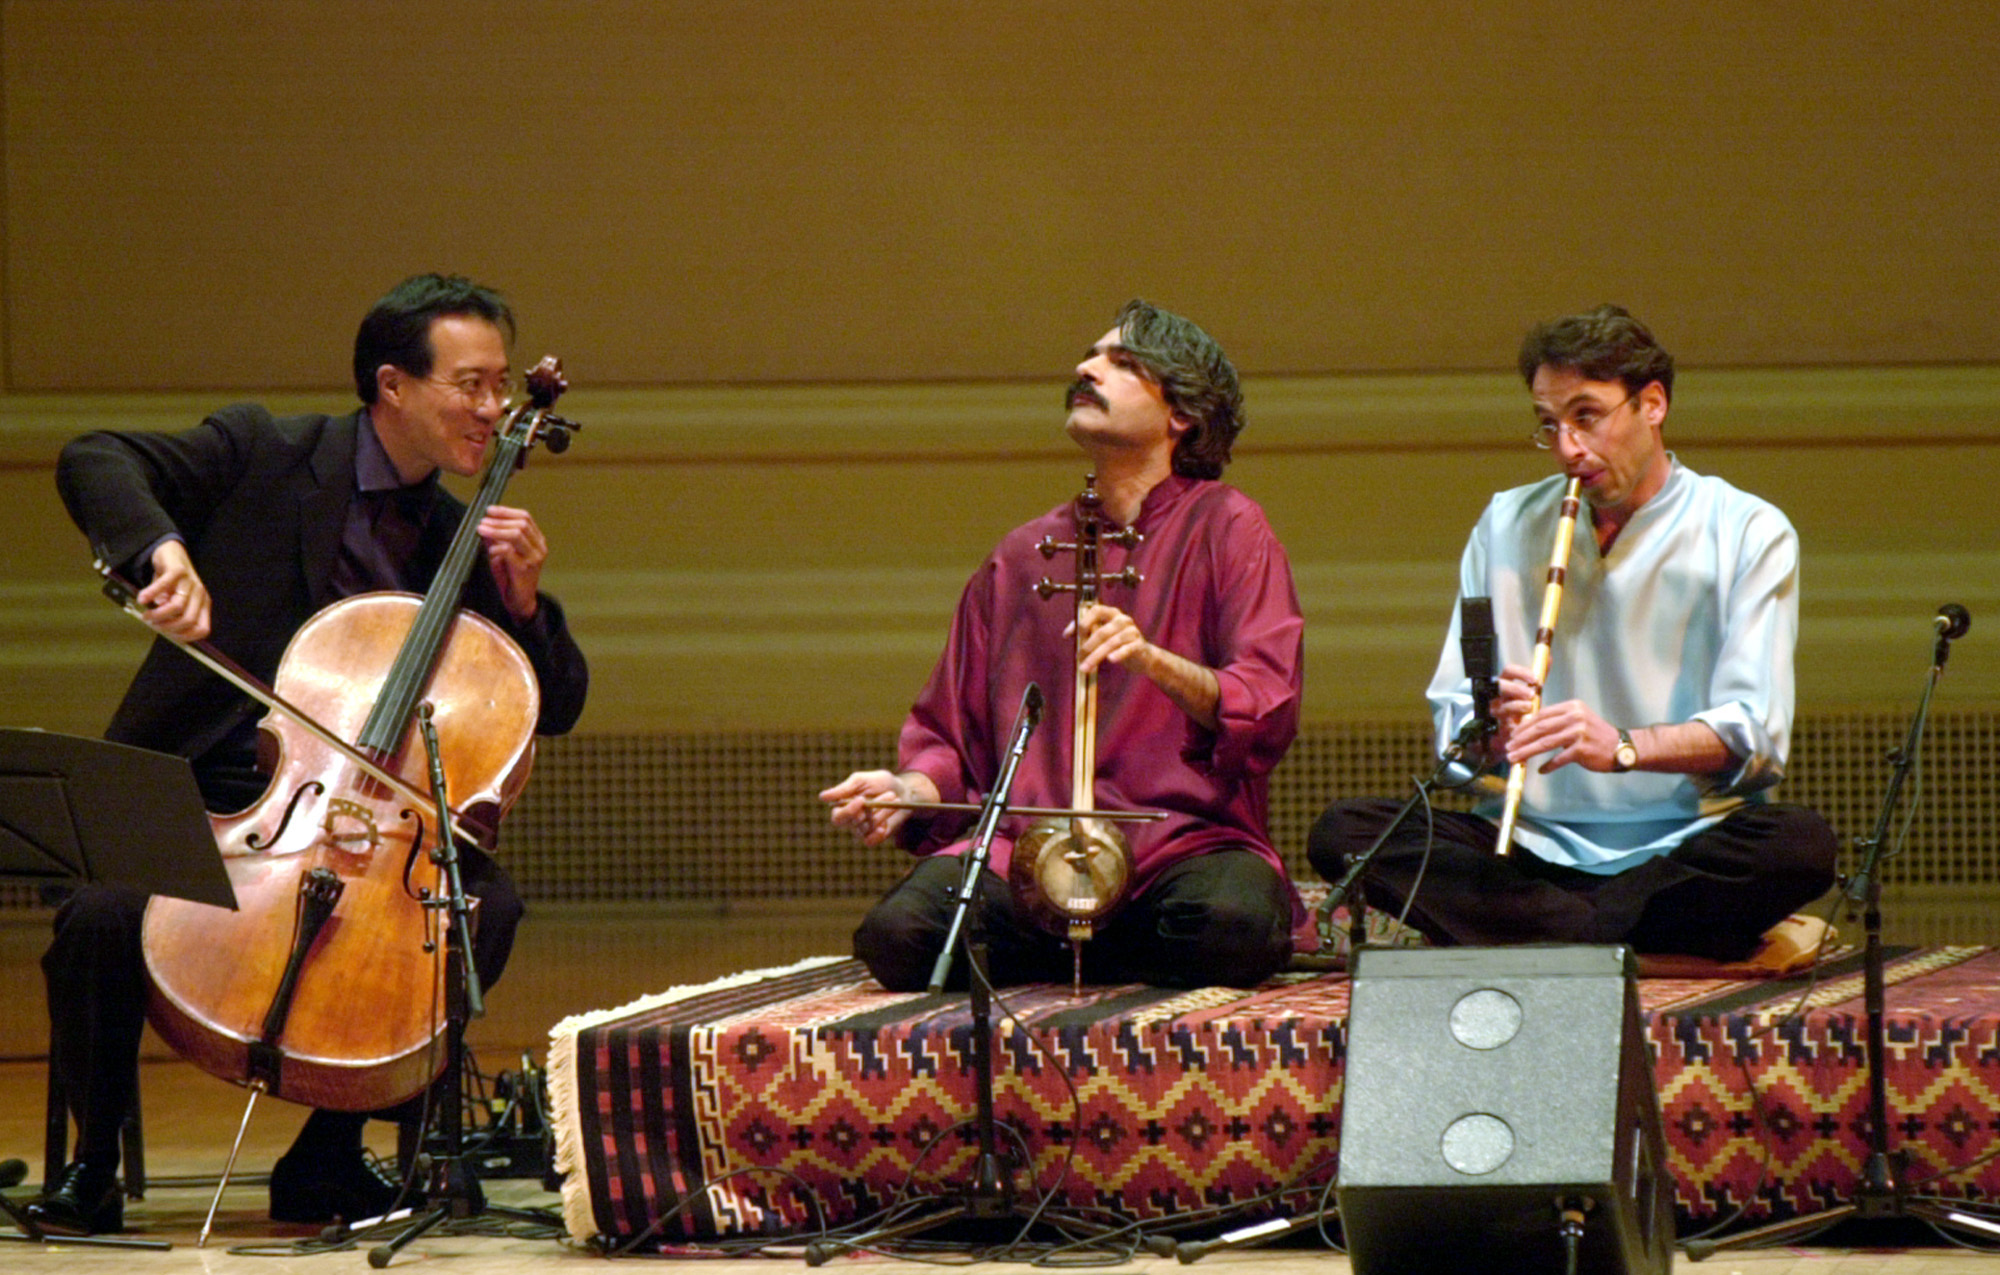 A Yo-Yo Ma Project Brings Together Musicians From Warring Nations